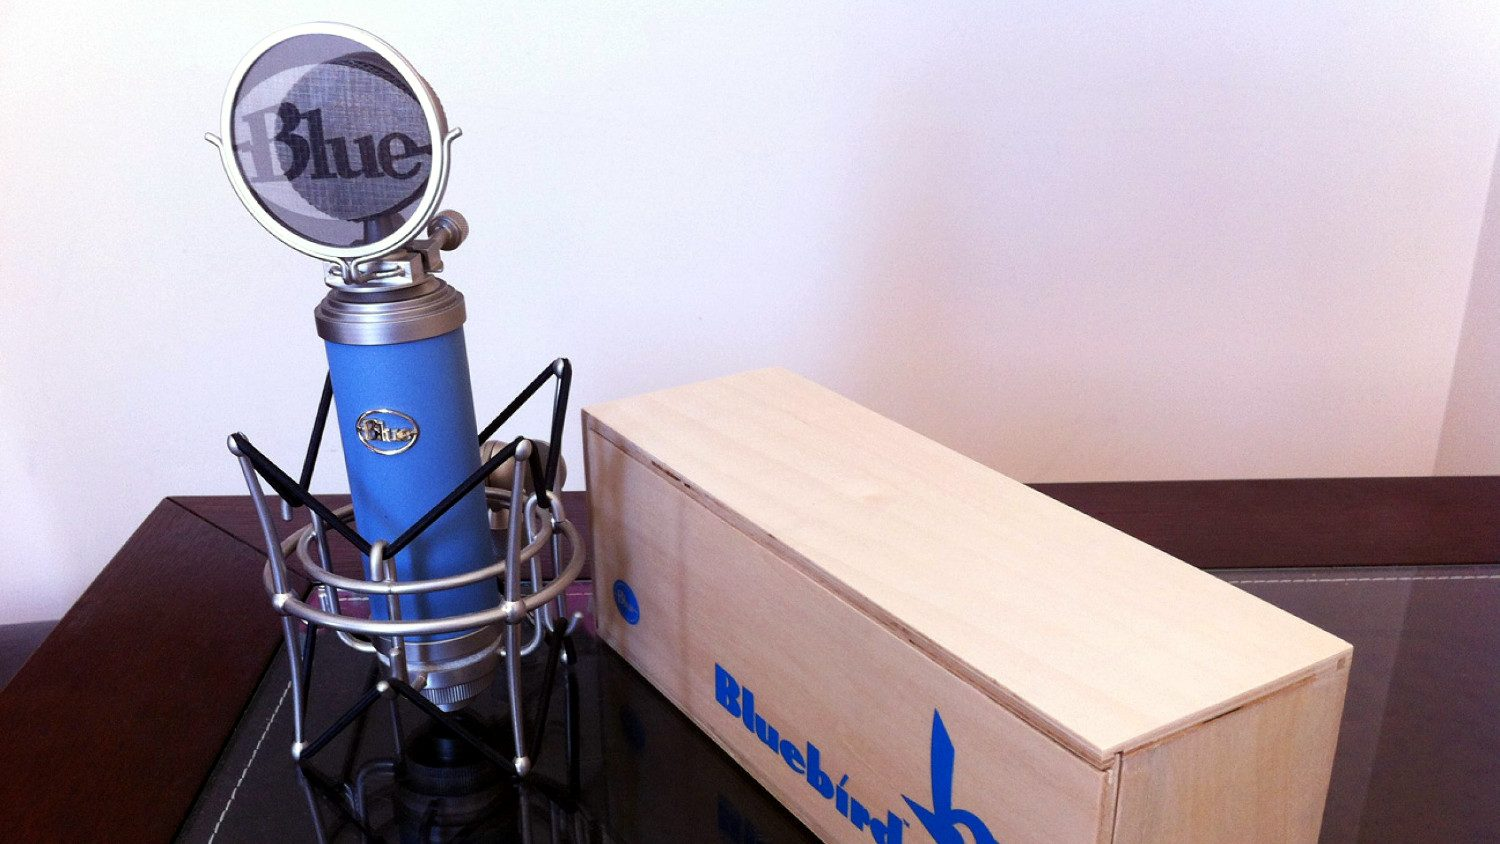 Blue Bluebird microphone review